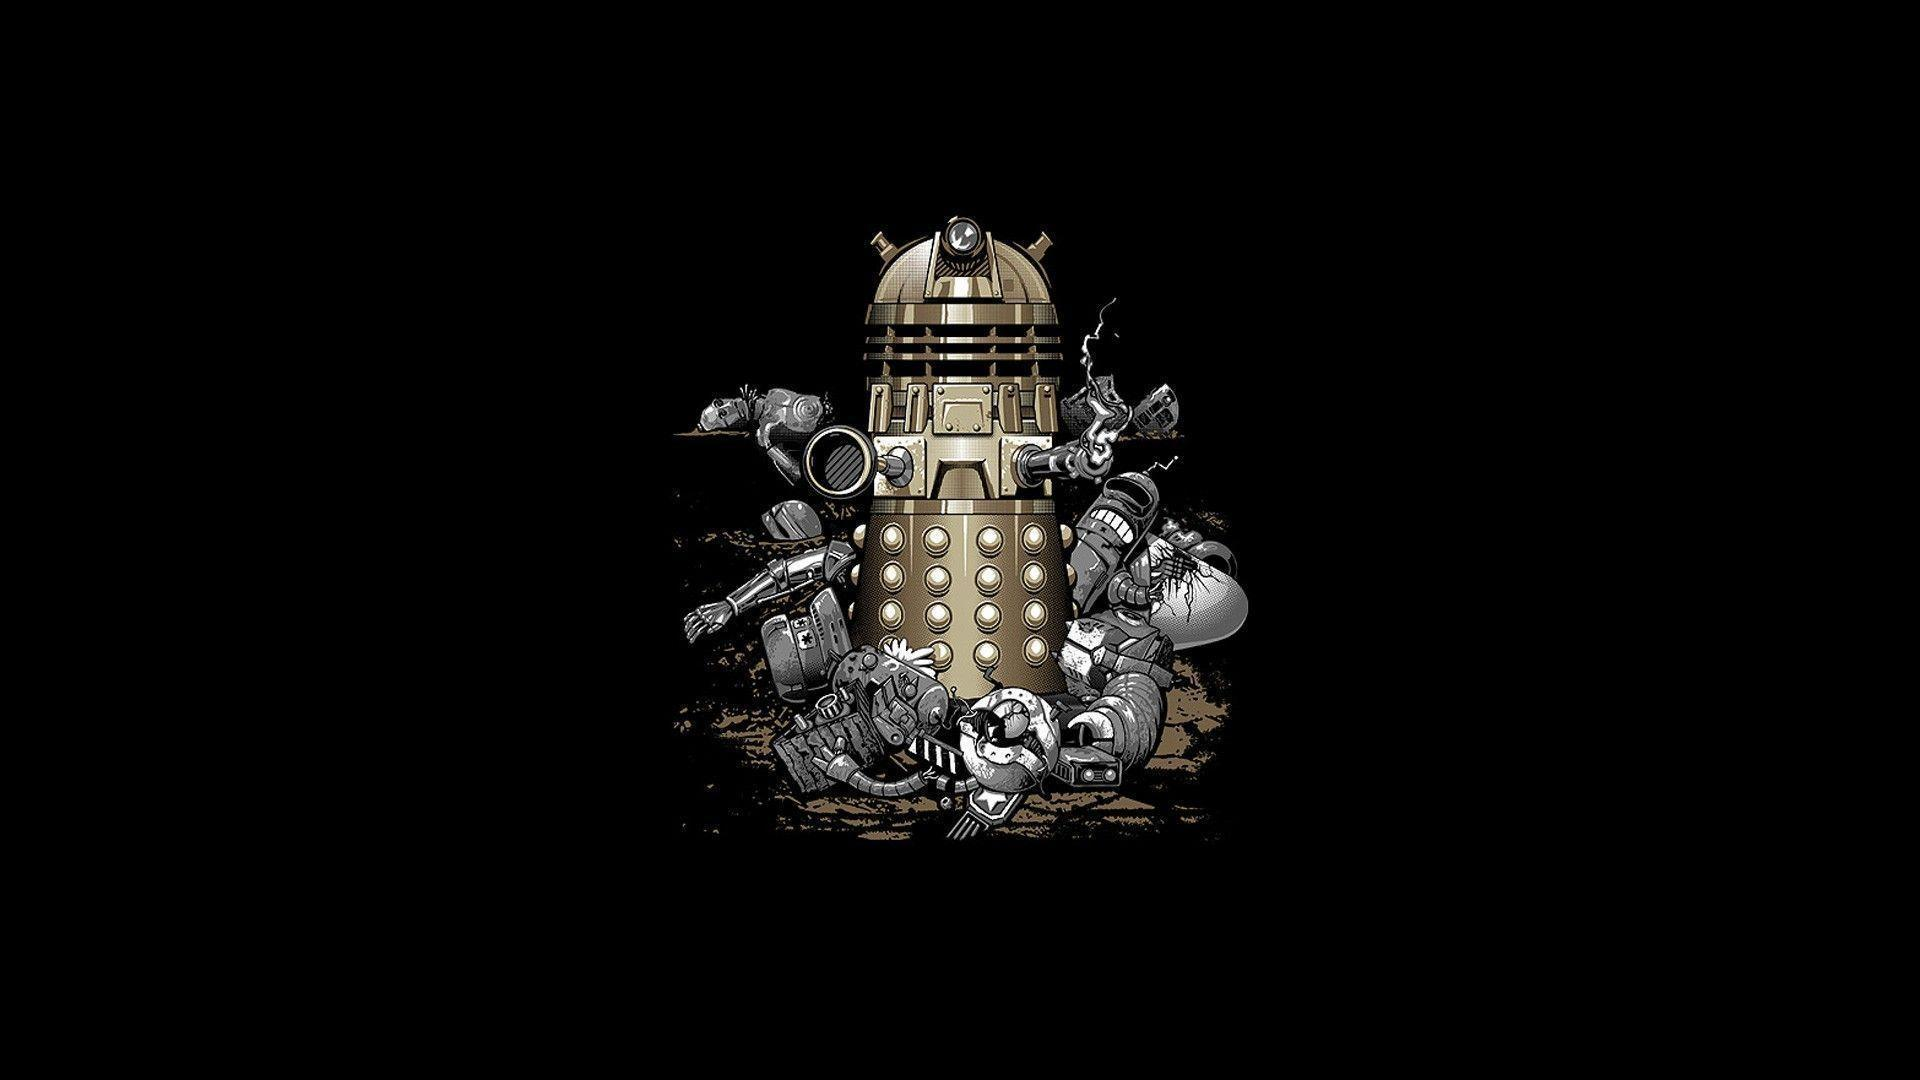 Wallpapers For > Doctor Who Wallpapers Hd Dalek